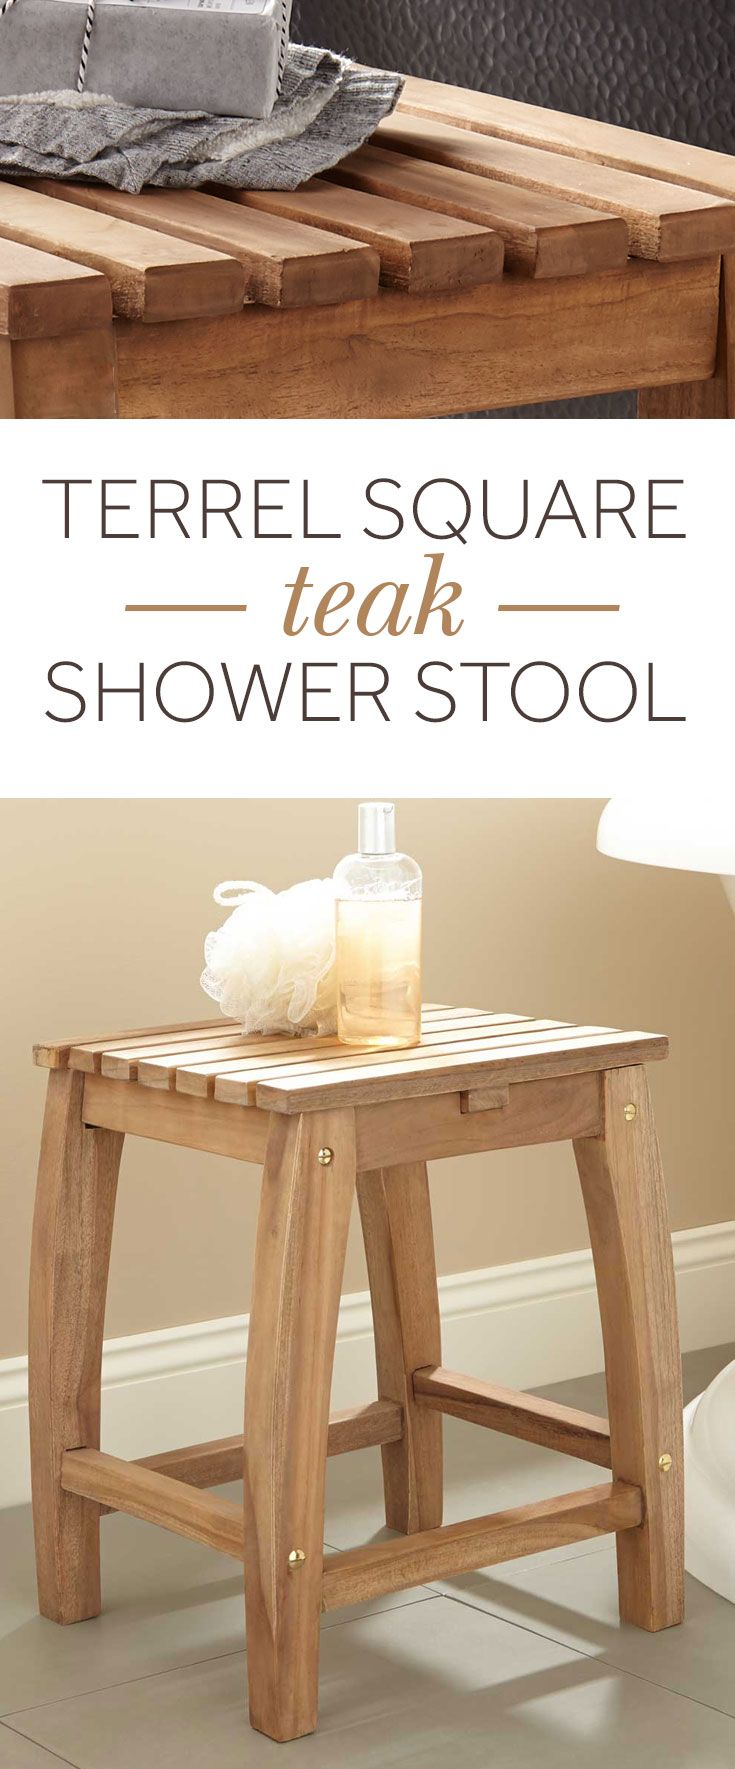 Add functional style to your bathroom with the Terrel Square Teak Shower Stool. Use as comfortable seating in the shower or for storage next to your freestanding tub, while taking up minimal space.